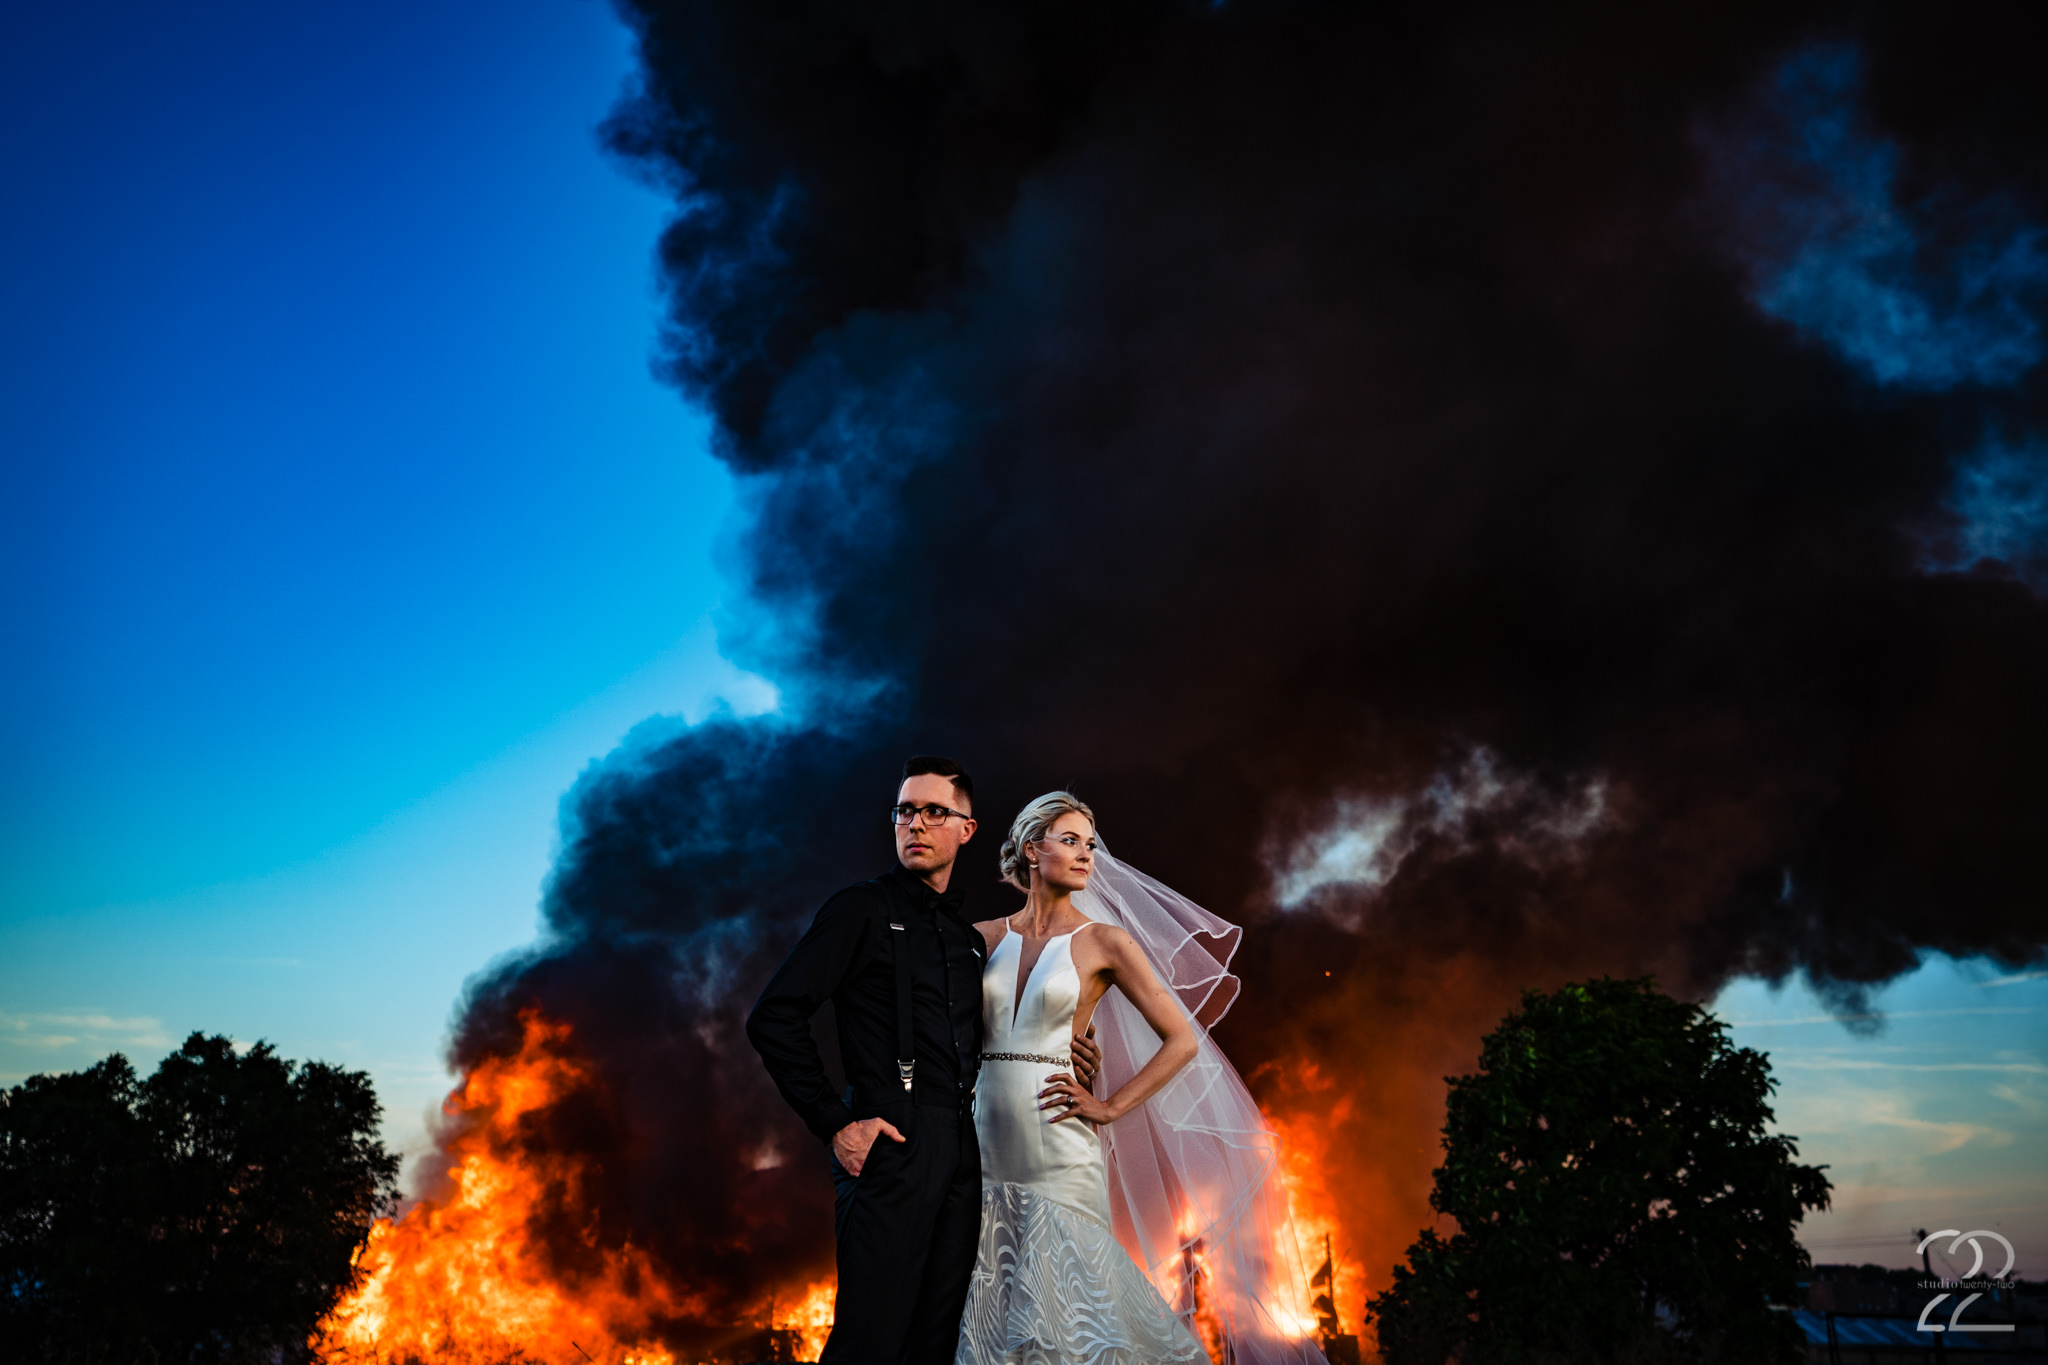 When documenting a wedding, Studio 22 wants you to remember every part of your day (even if that means taking photos in front of a burning building across the street). Dillon and Corrie were so in sync with what they wanted, they came running to get this shot in Dayton, Ohio. This will be a wedding no one will forget, and a photograph for them to talk about for years to come.